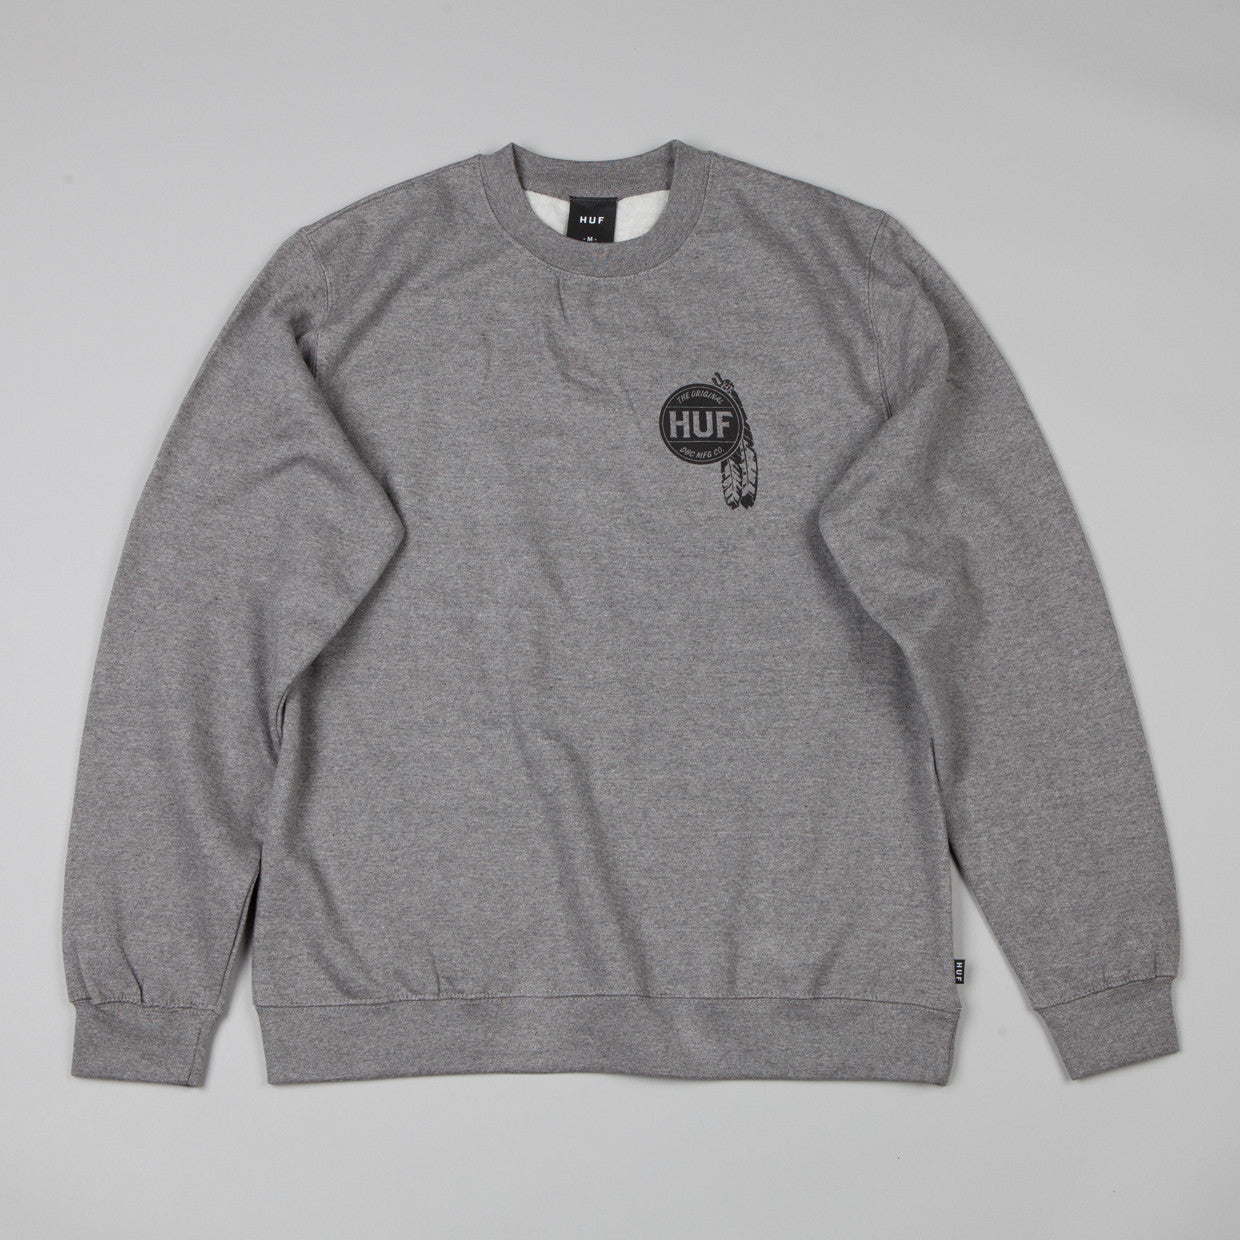 HUF Native Crew Neck Sweatshirt Grey Heather